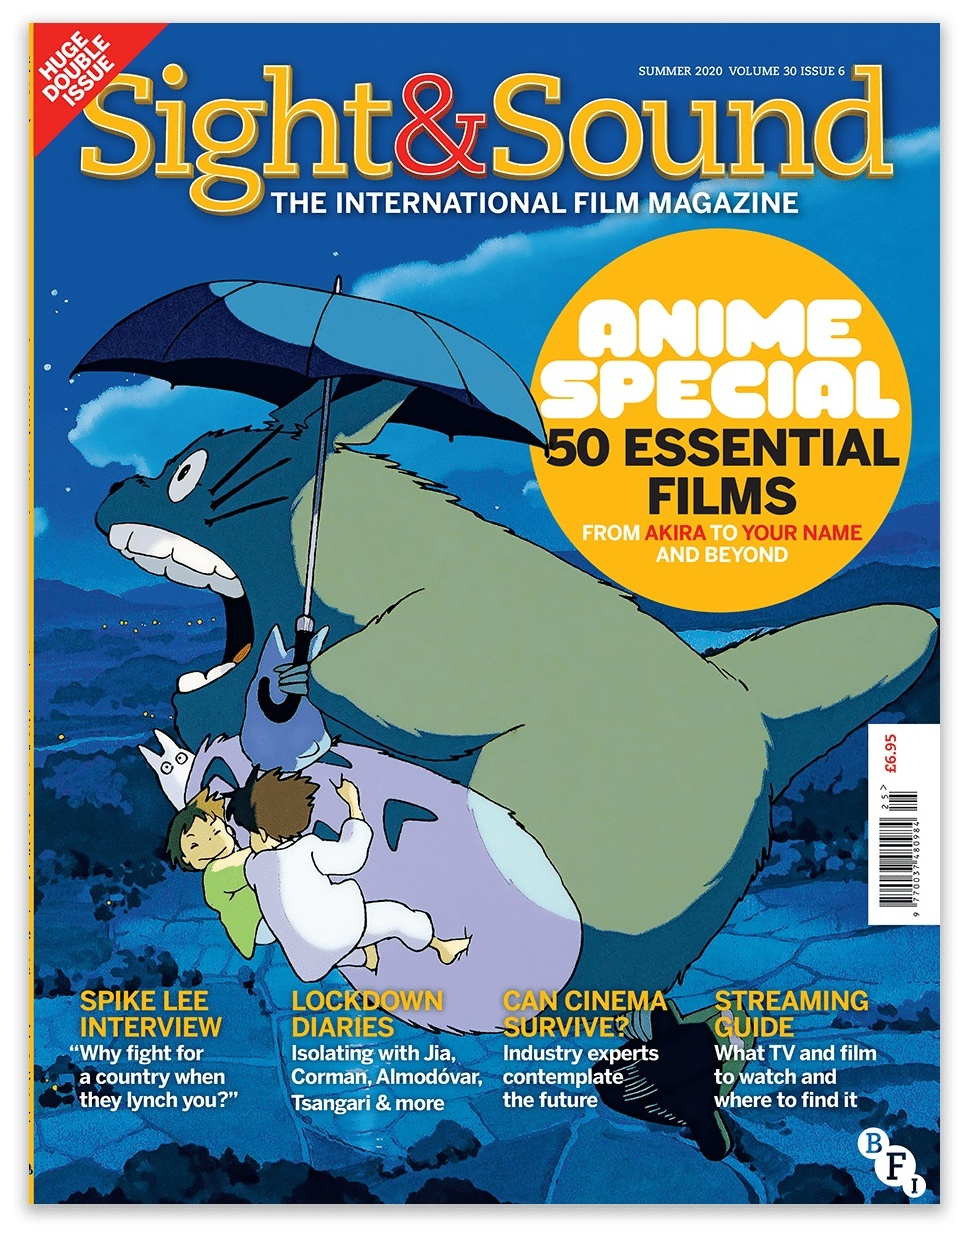 Sight & Sound Magazine Cover - June 2020 Anime Special Issue